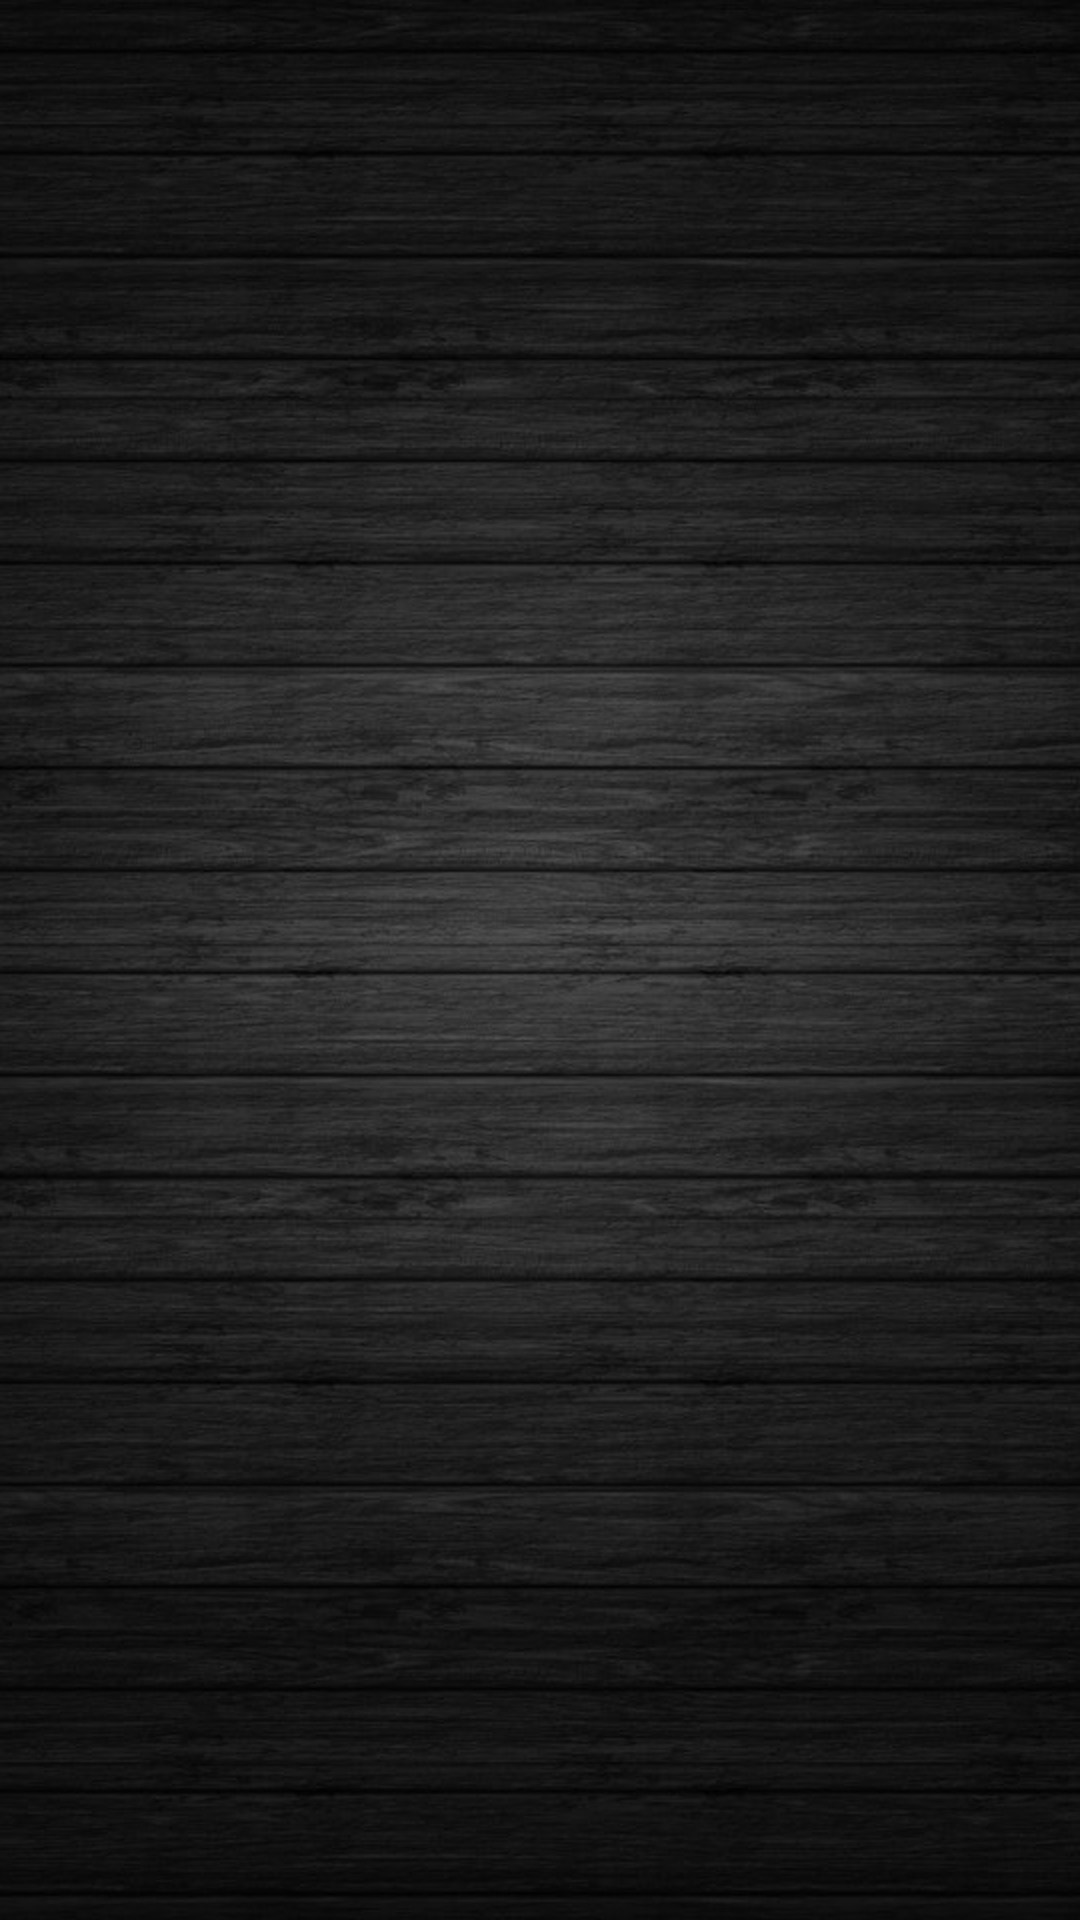 Background image iphone 6 plus - Background Wooden Planks 1 Hd Wallpaper Iphone 6 Plus